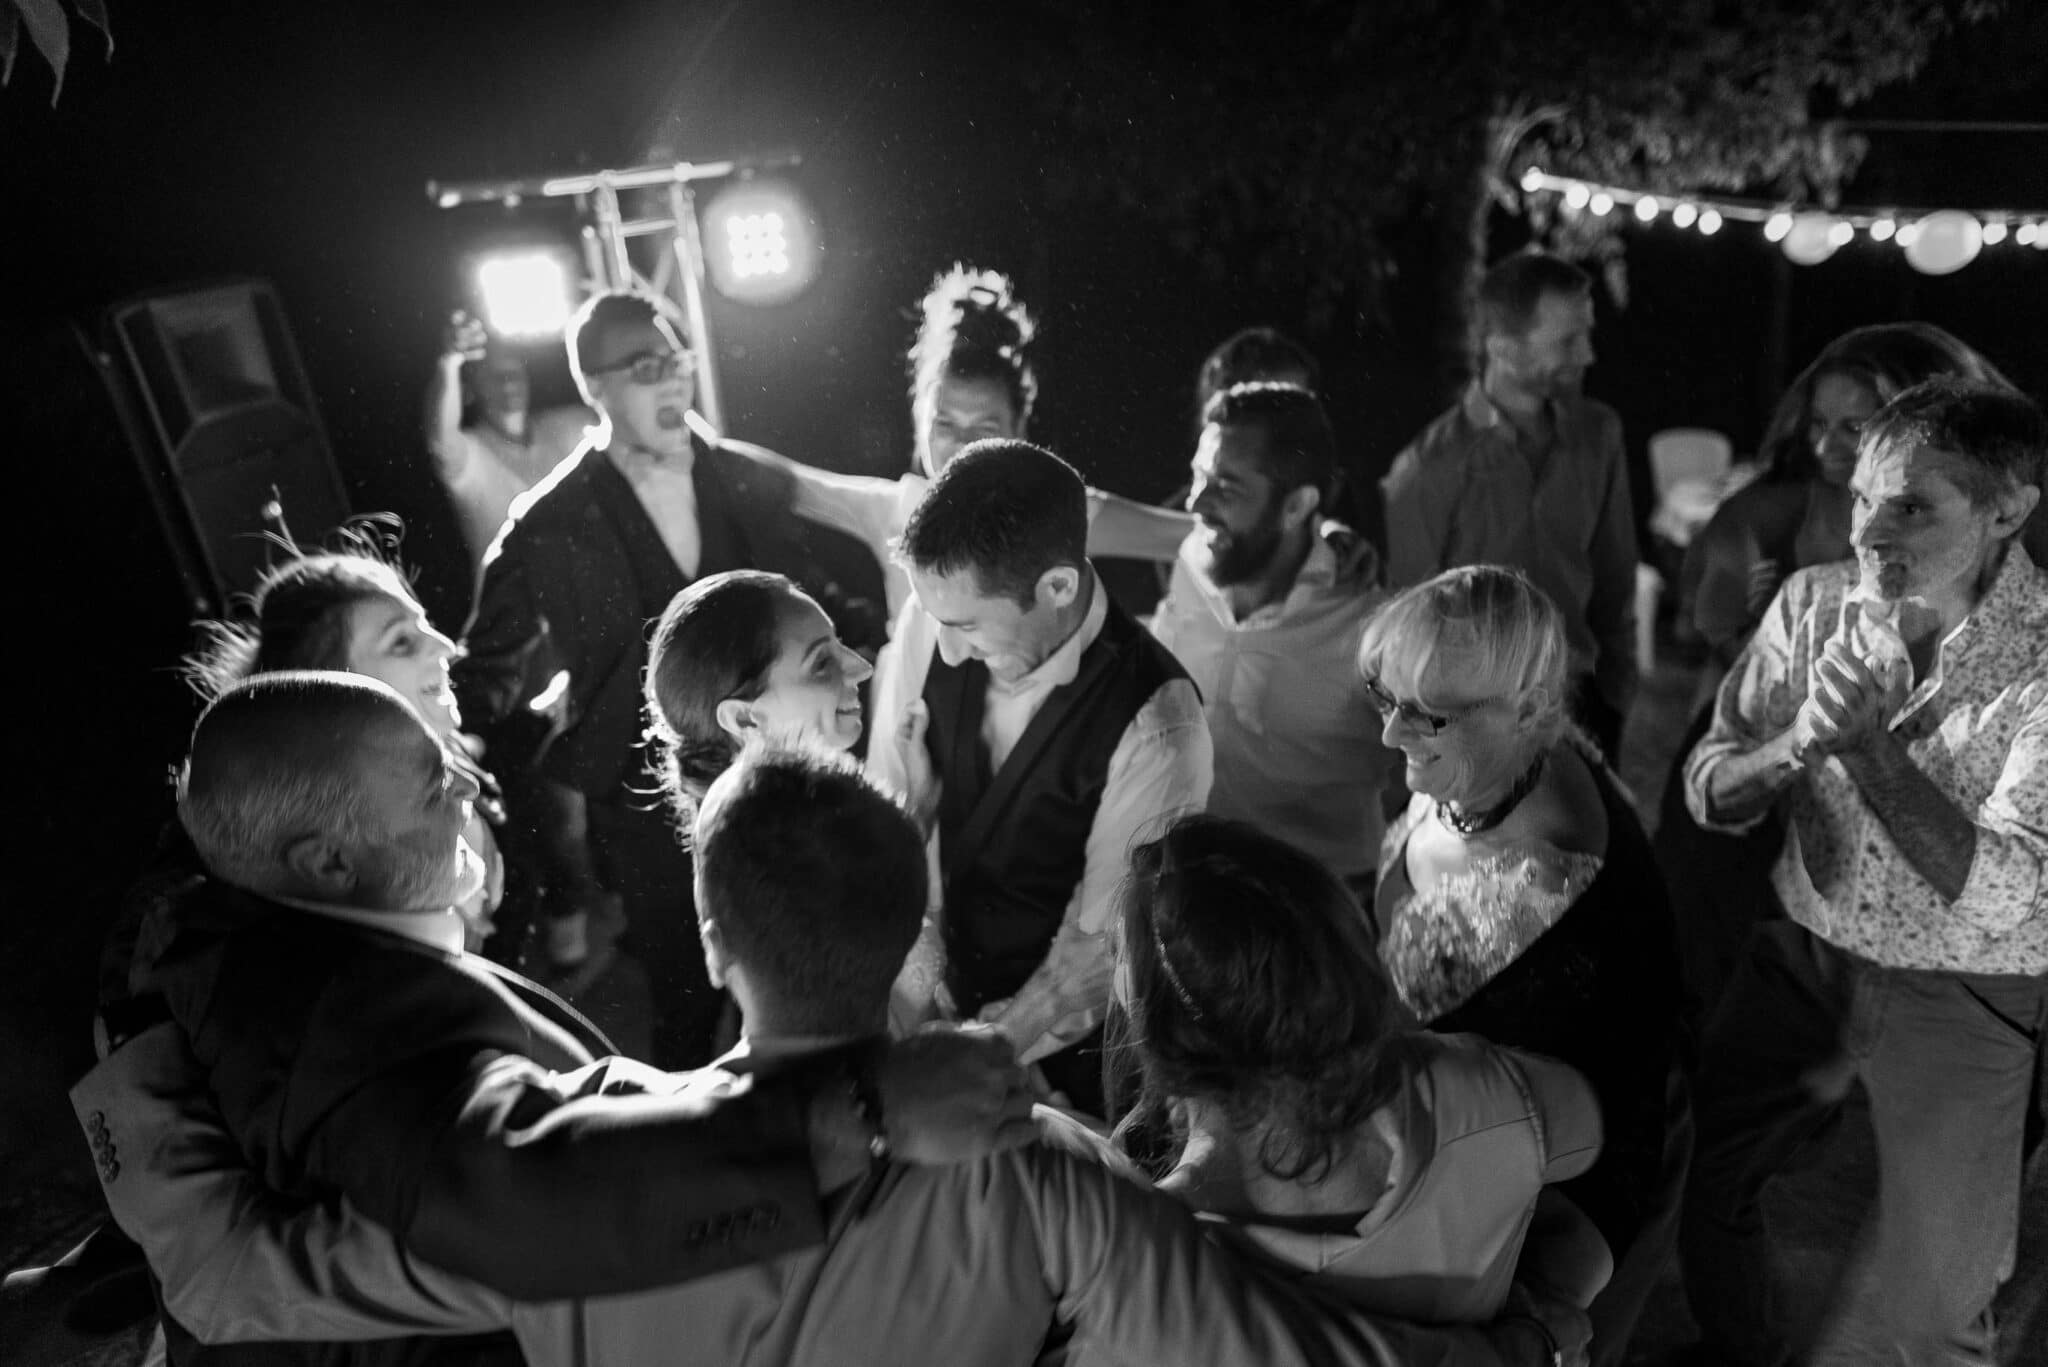 The bride and groom and guests dance